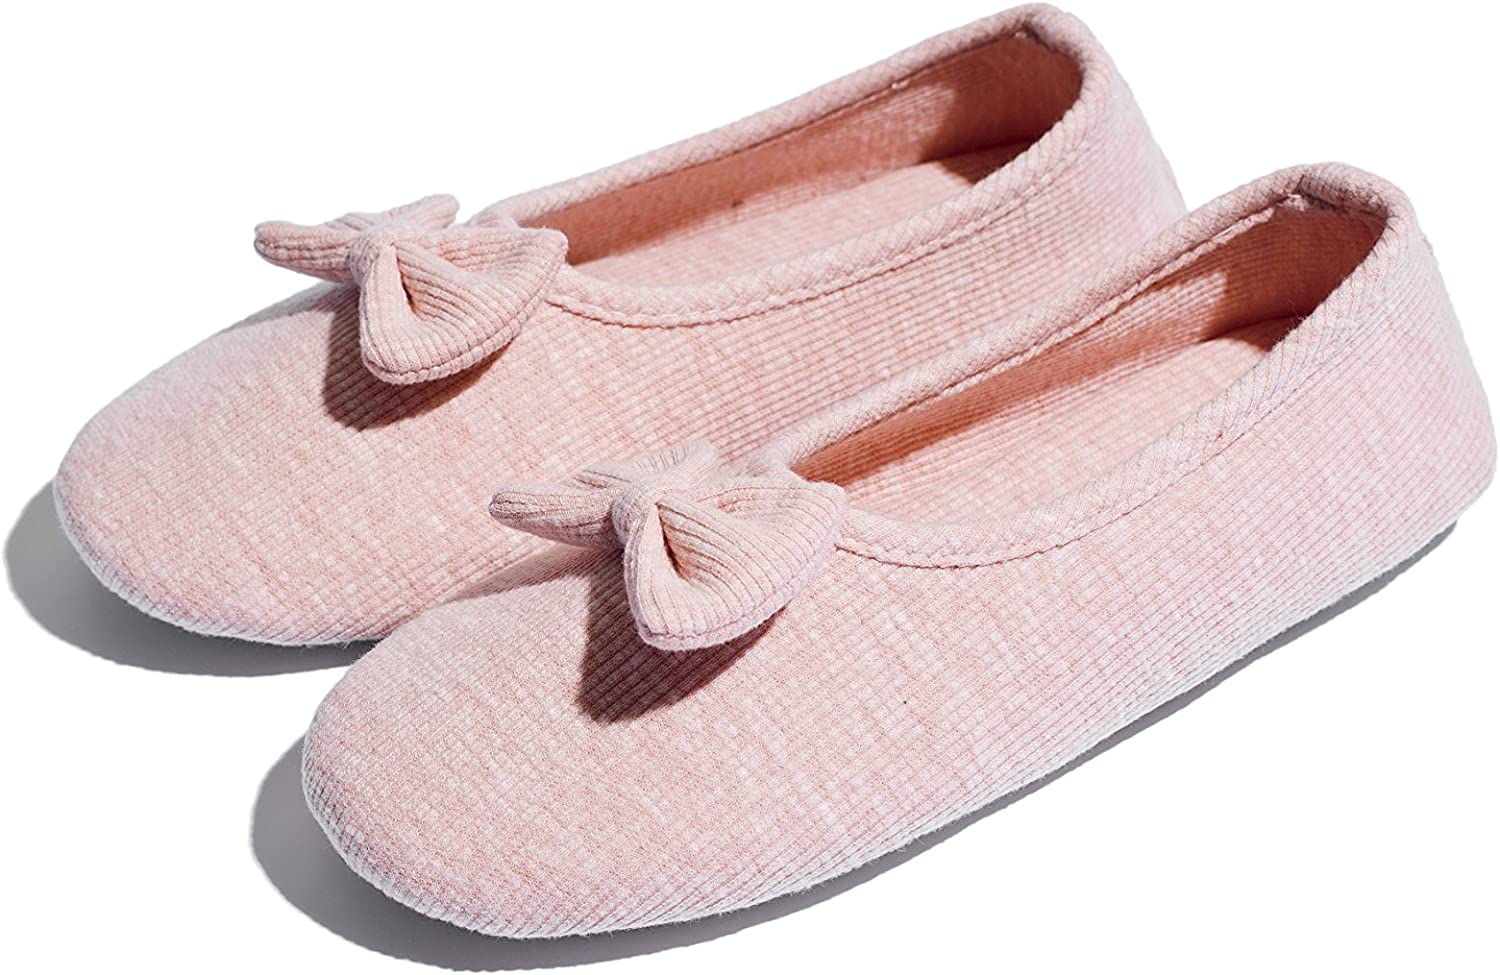 Flipped Women Comfortable Slippers Lightweight Soft Indoor House shoes with Non-Slip Out Sole Bowknot